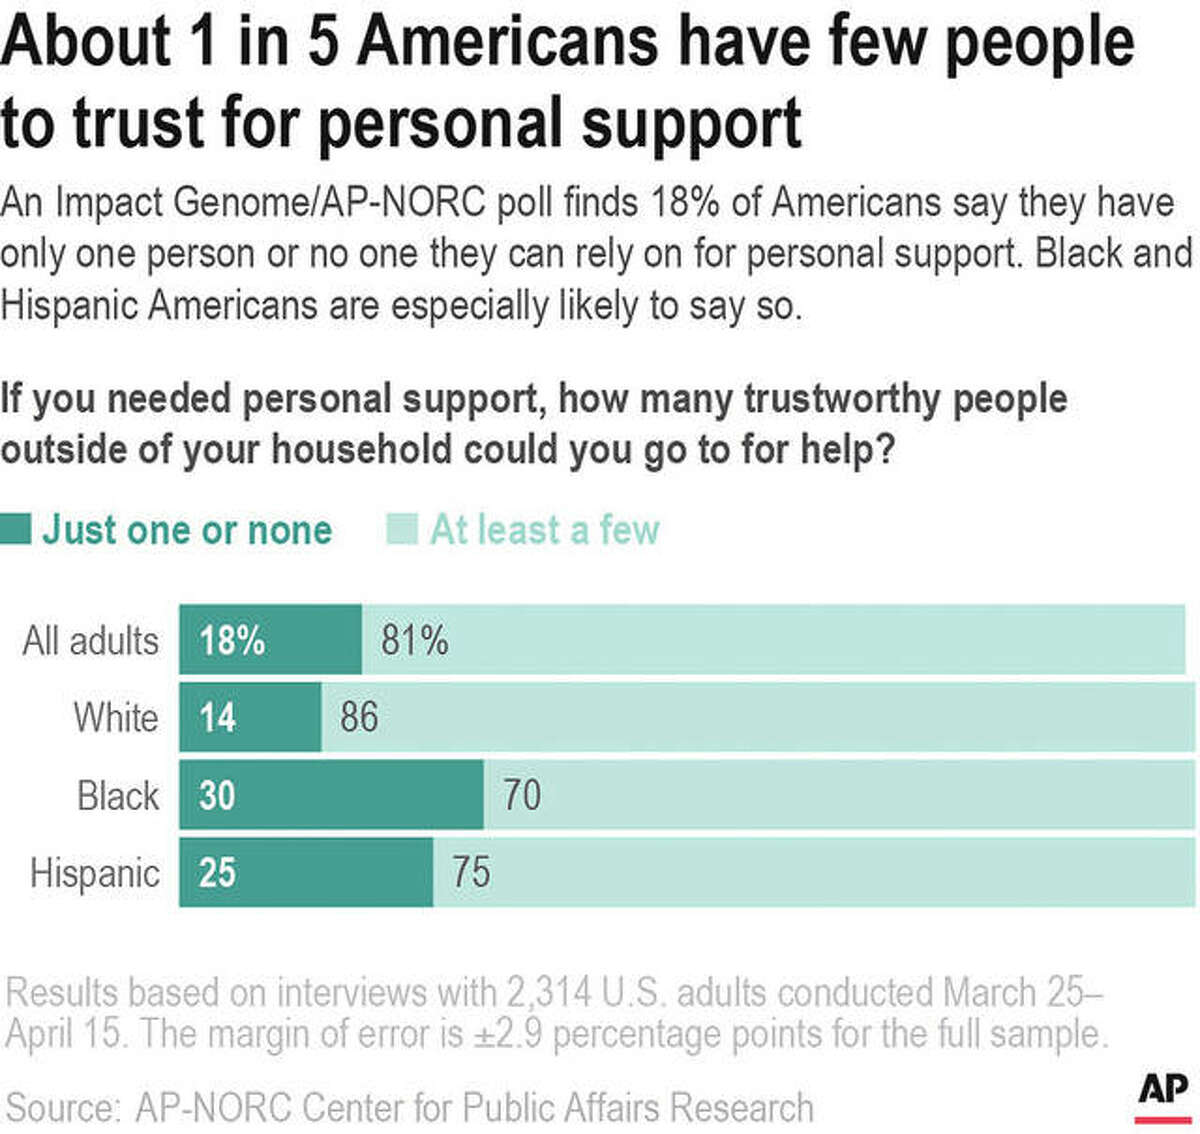 A poll finds 18% of Americans say they have only one person or no one they can rely on for personal support. Black and Hispanic Americans are especially likely to say so.